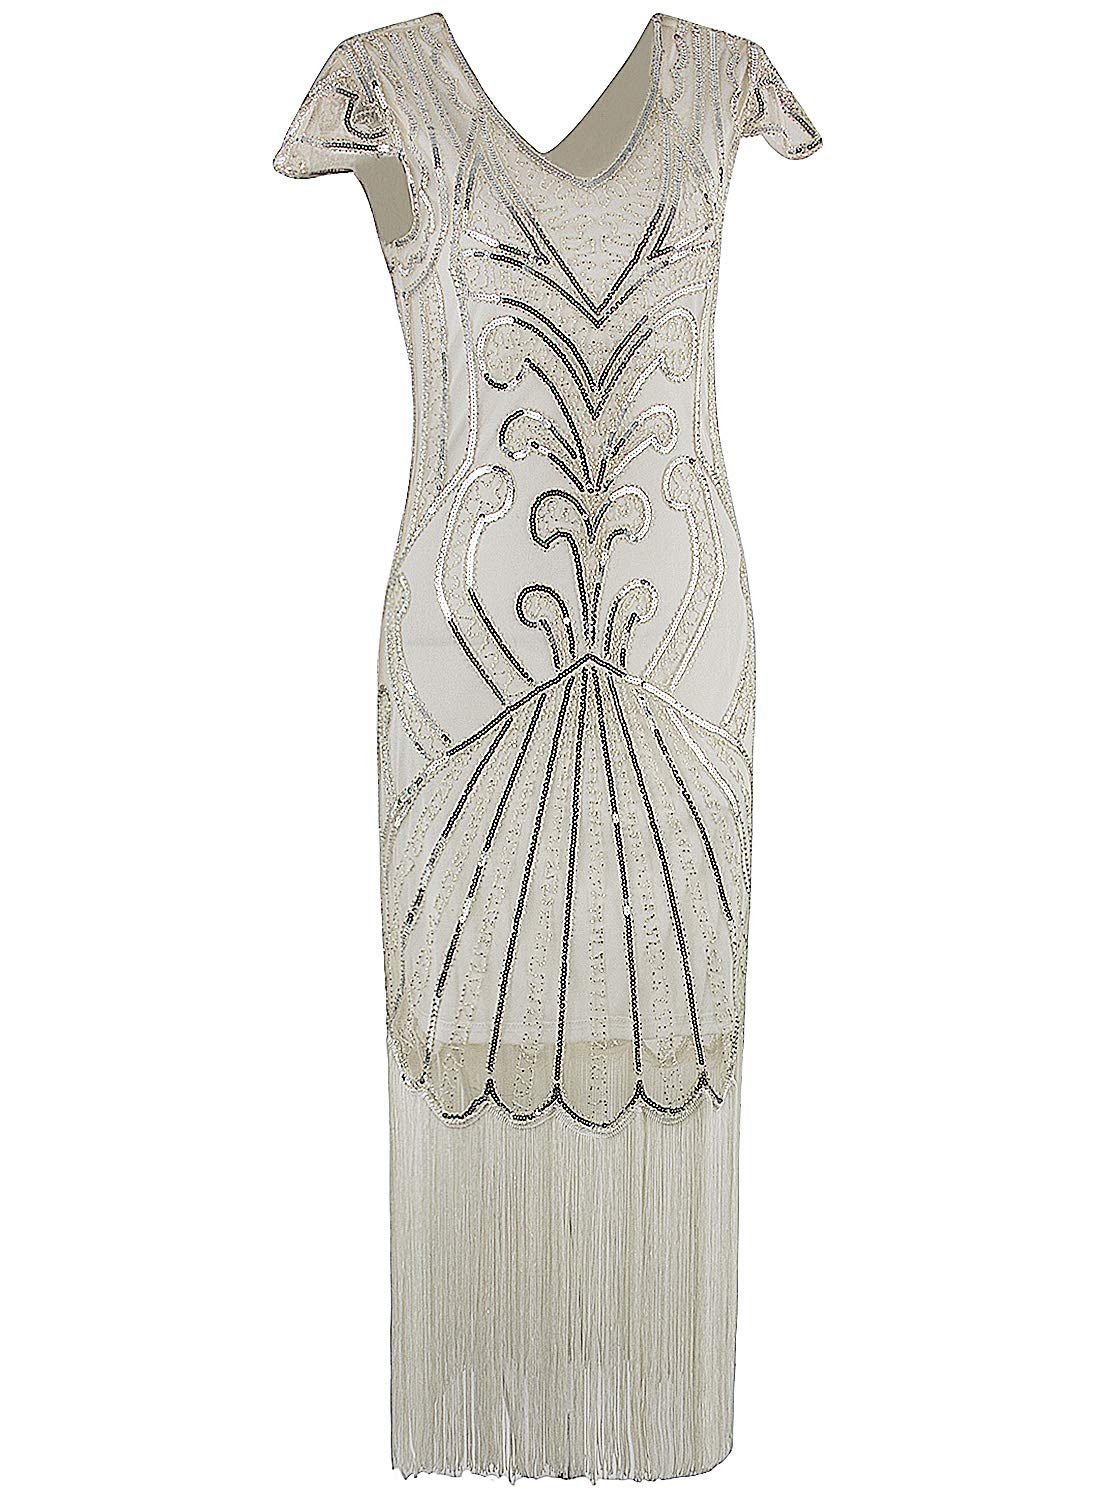 Vijiv Long Prom 1920s Gatsby Dresses With Sleeves Sequin Art Deco Flapper Dress,Beige Silver,XX-Large by VIJIV